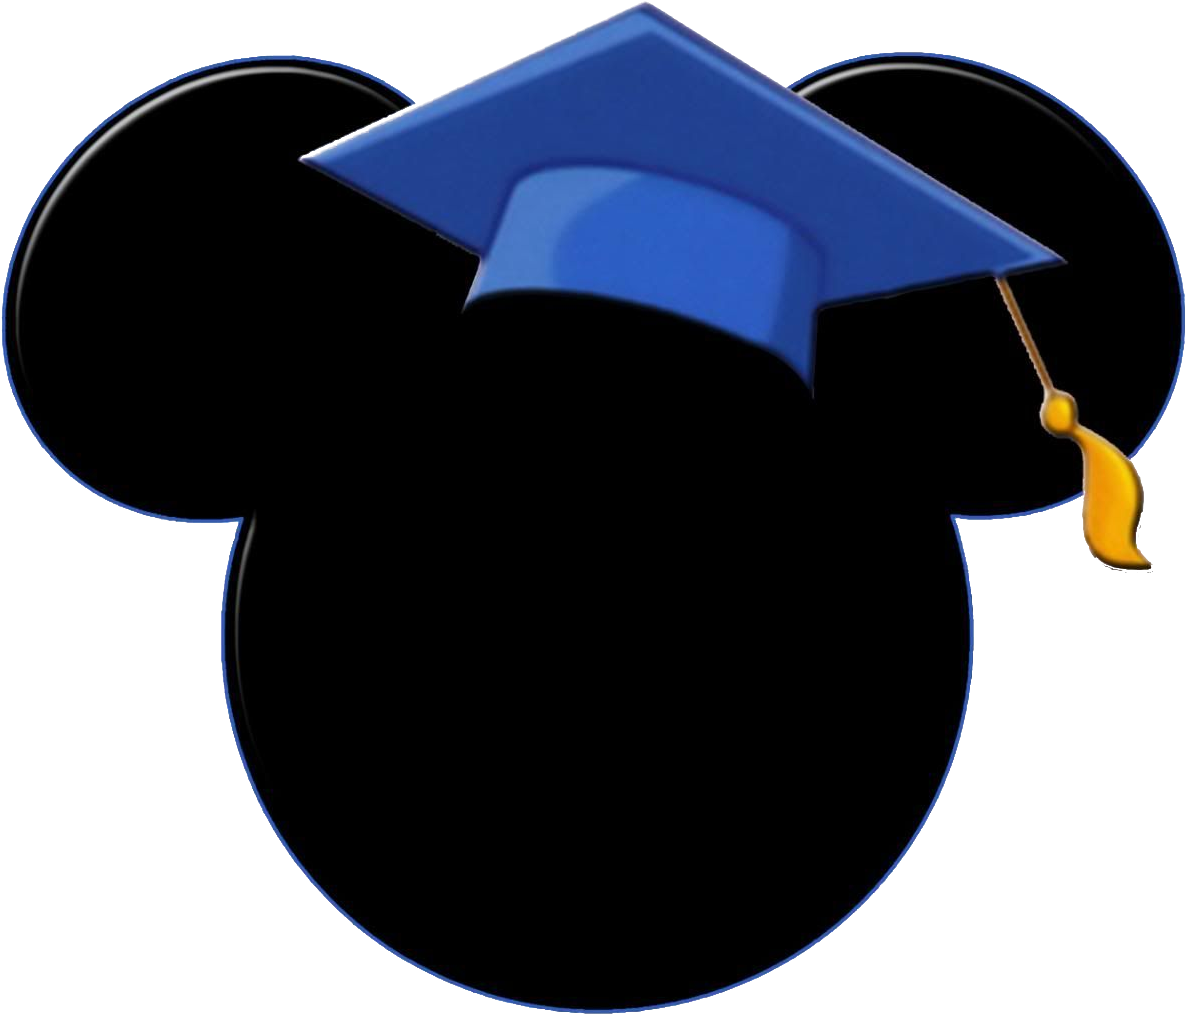 Happiest place on earth clipart graphic royalty free download Happiest Grads On Earth - Graduation Mickey Mouse 2019 Clipart ... graphic royalty free download